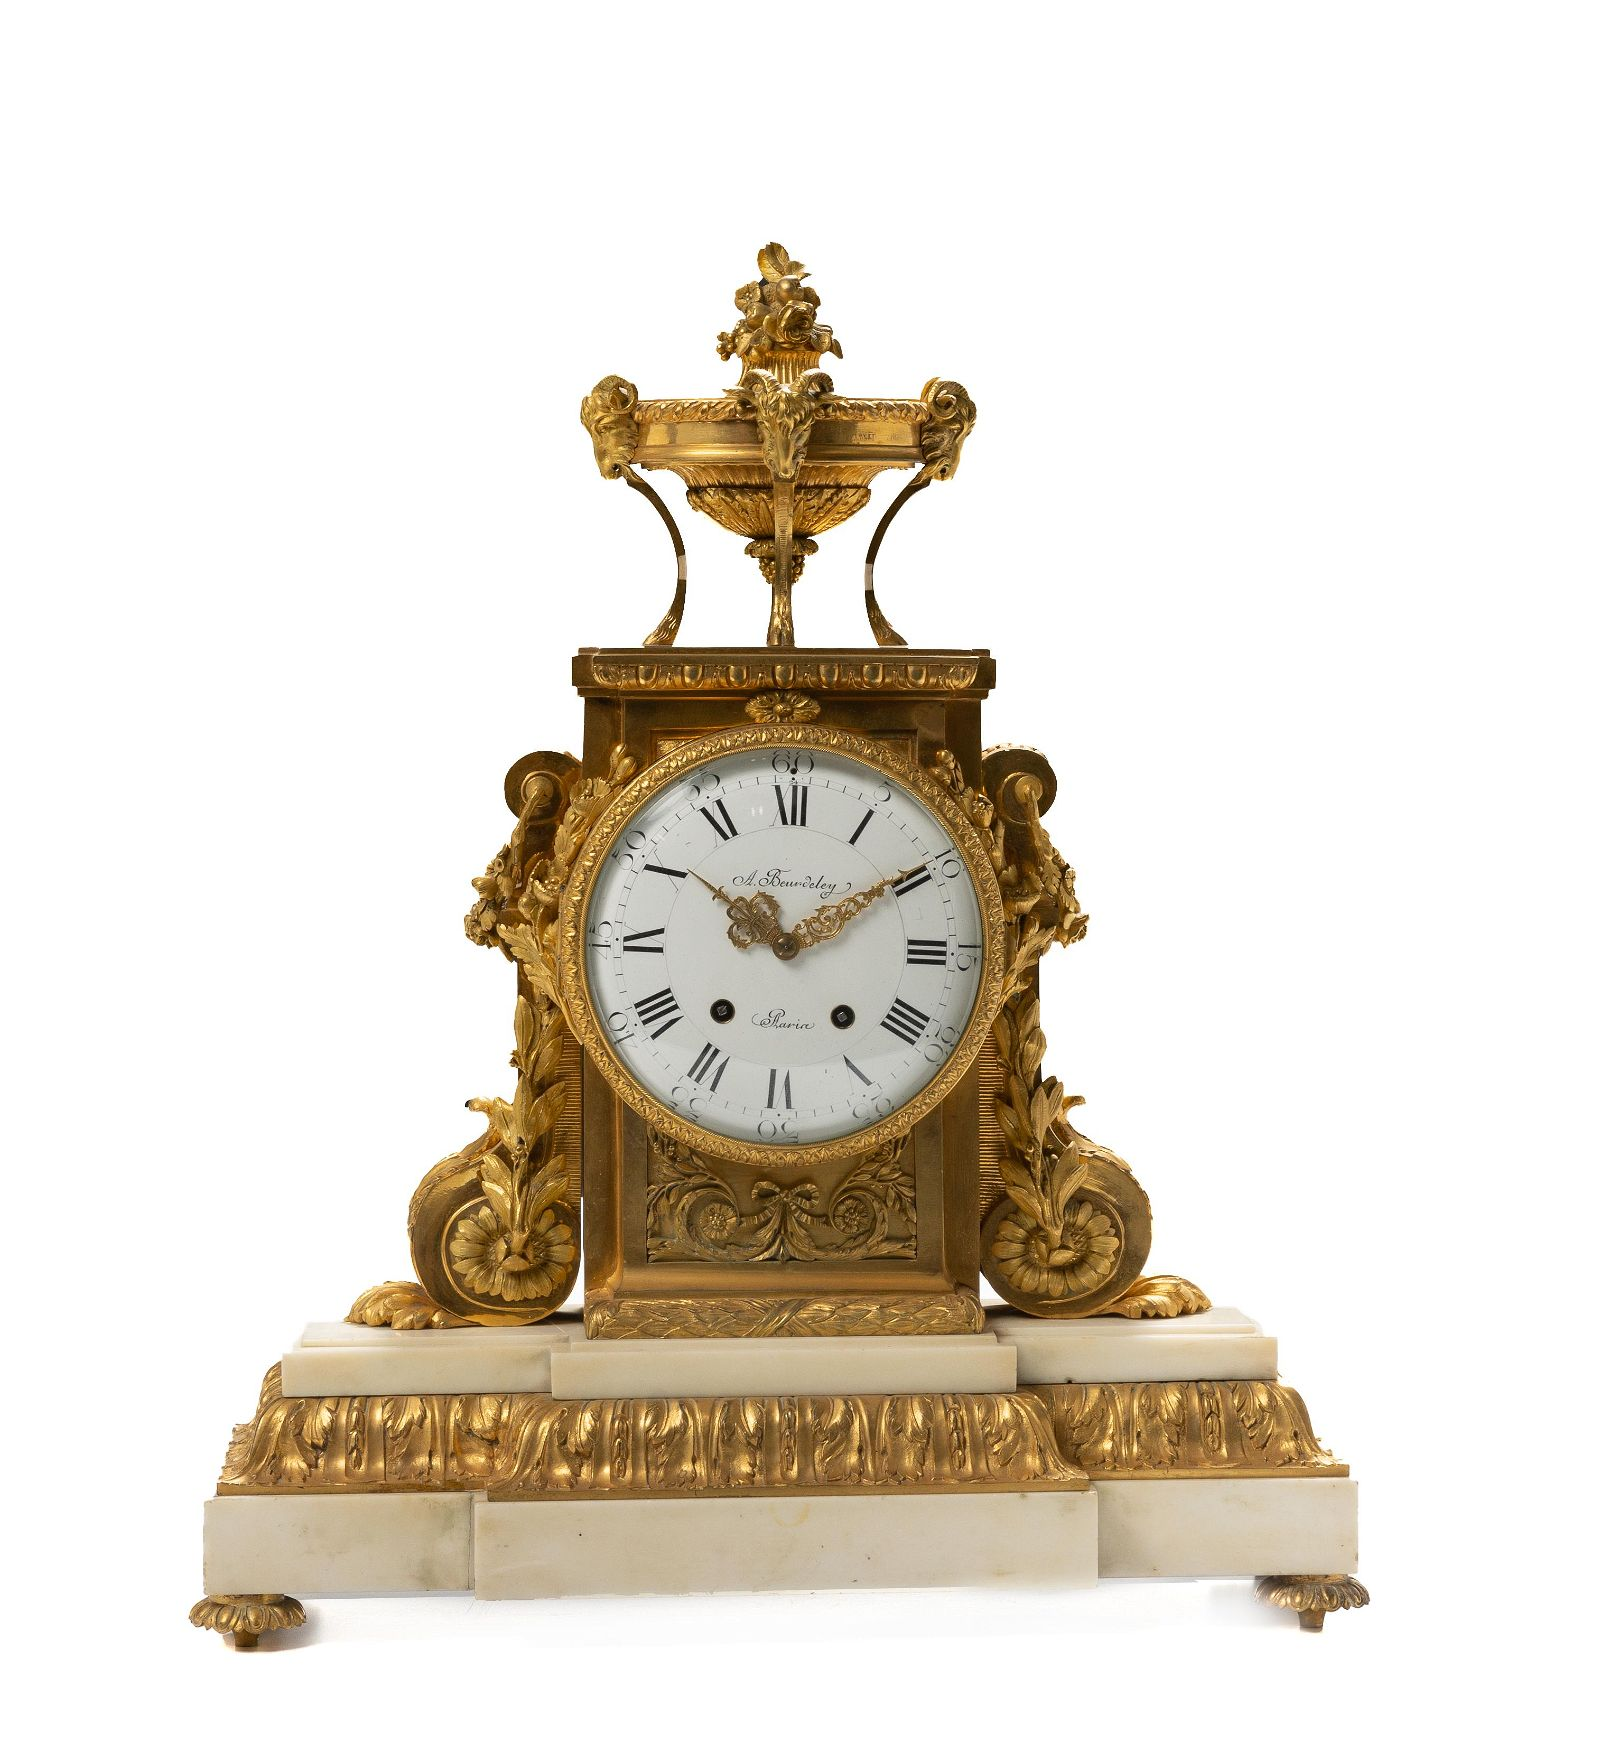 A French gilt-bronze and marble mantel clock